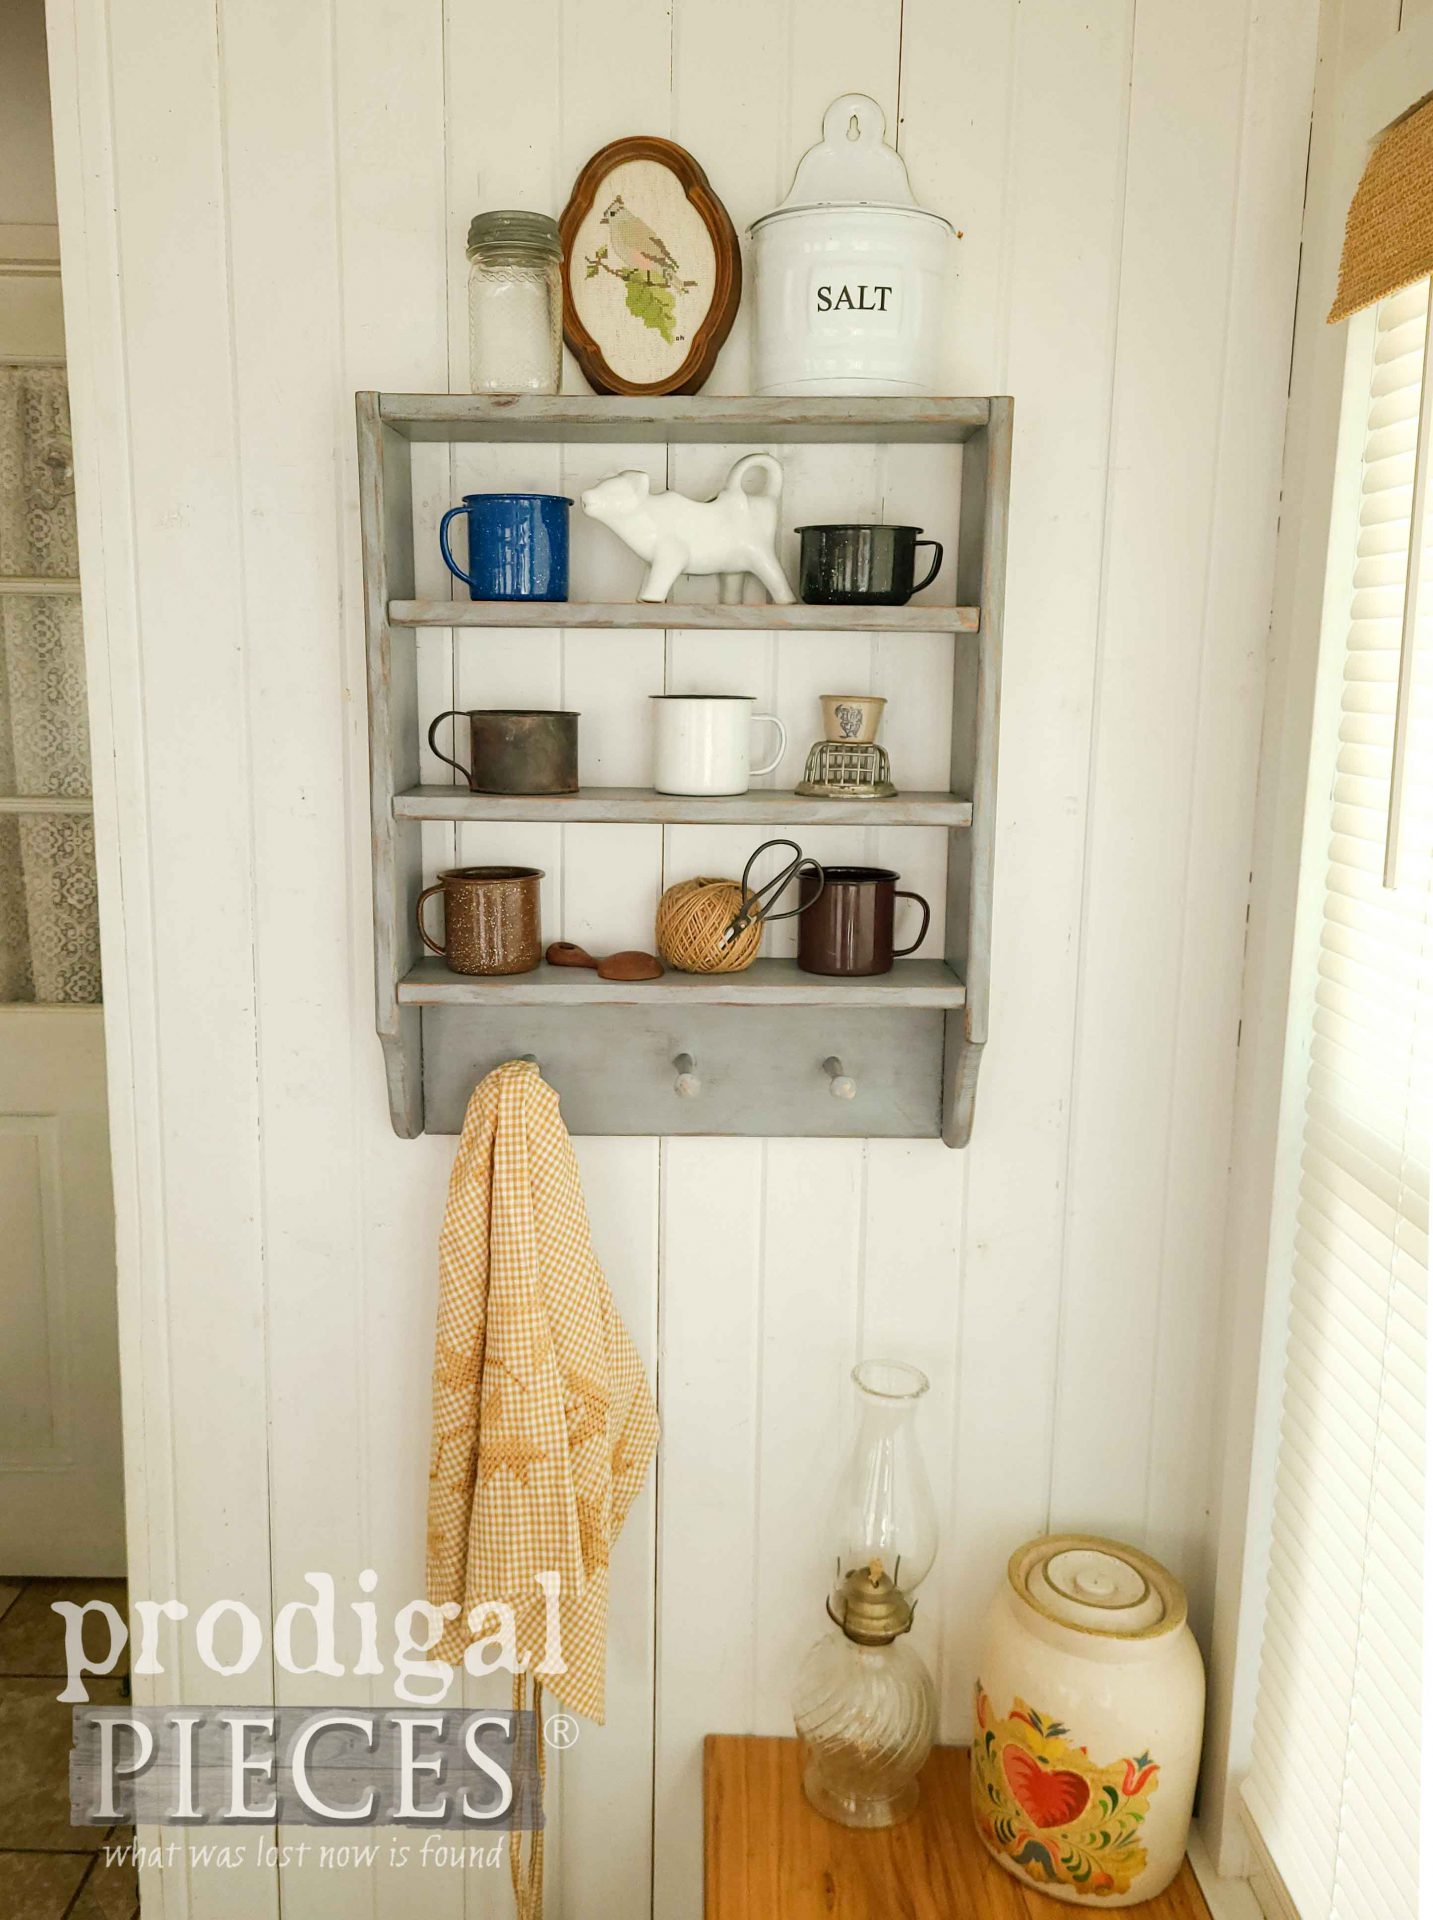 Farmhouse Style with Shaker Pegs by Prodigal Pieces | prodigalpieces.com #prodigalpieces #diy #home #homedecor